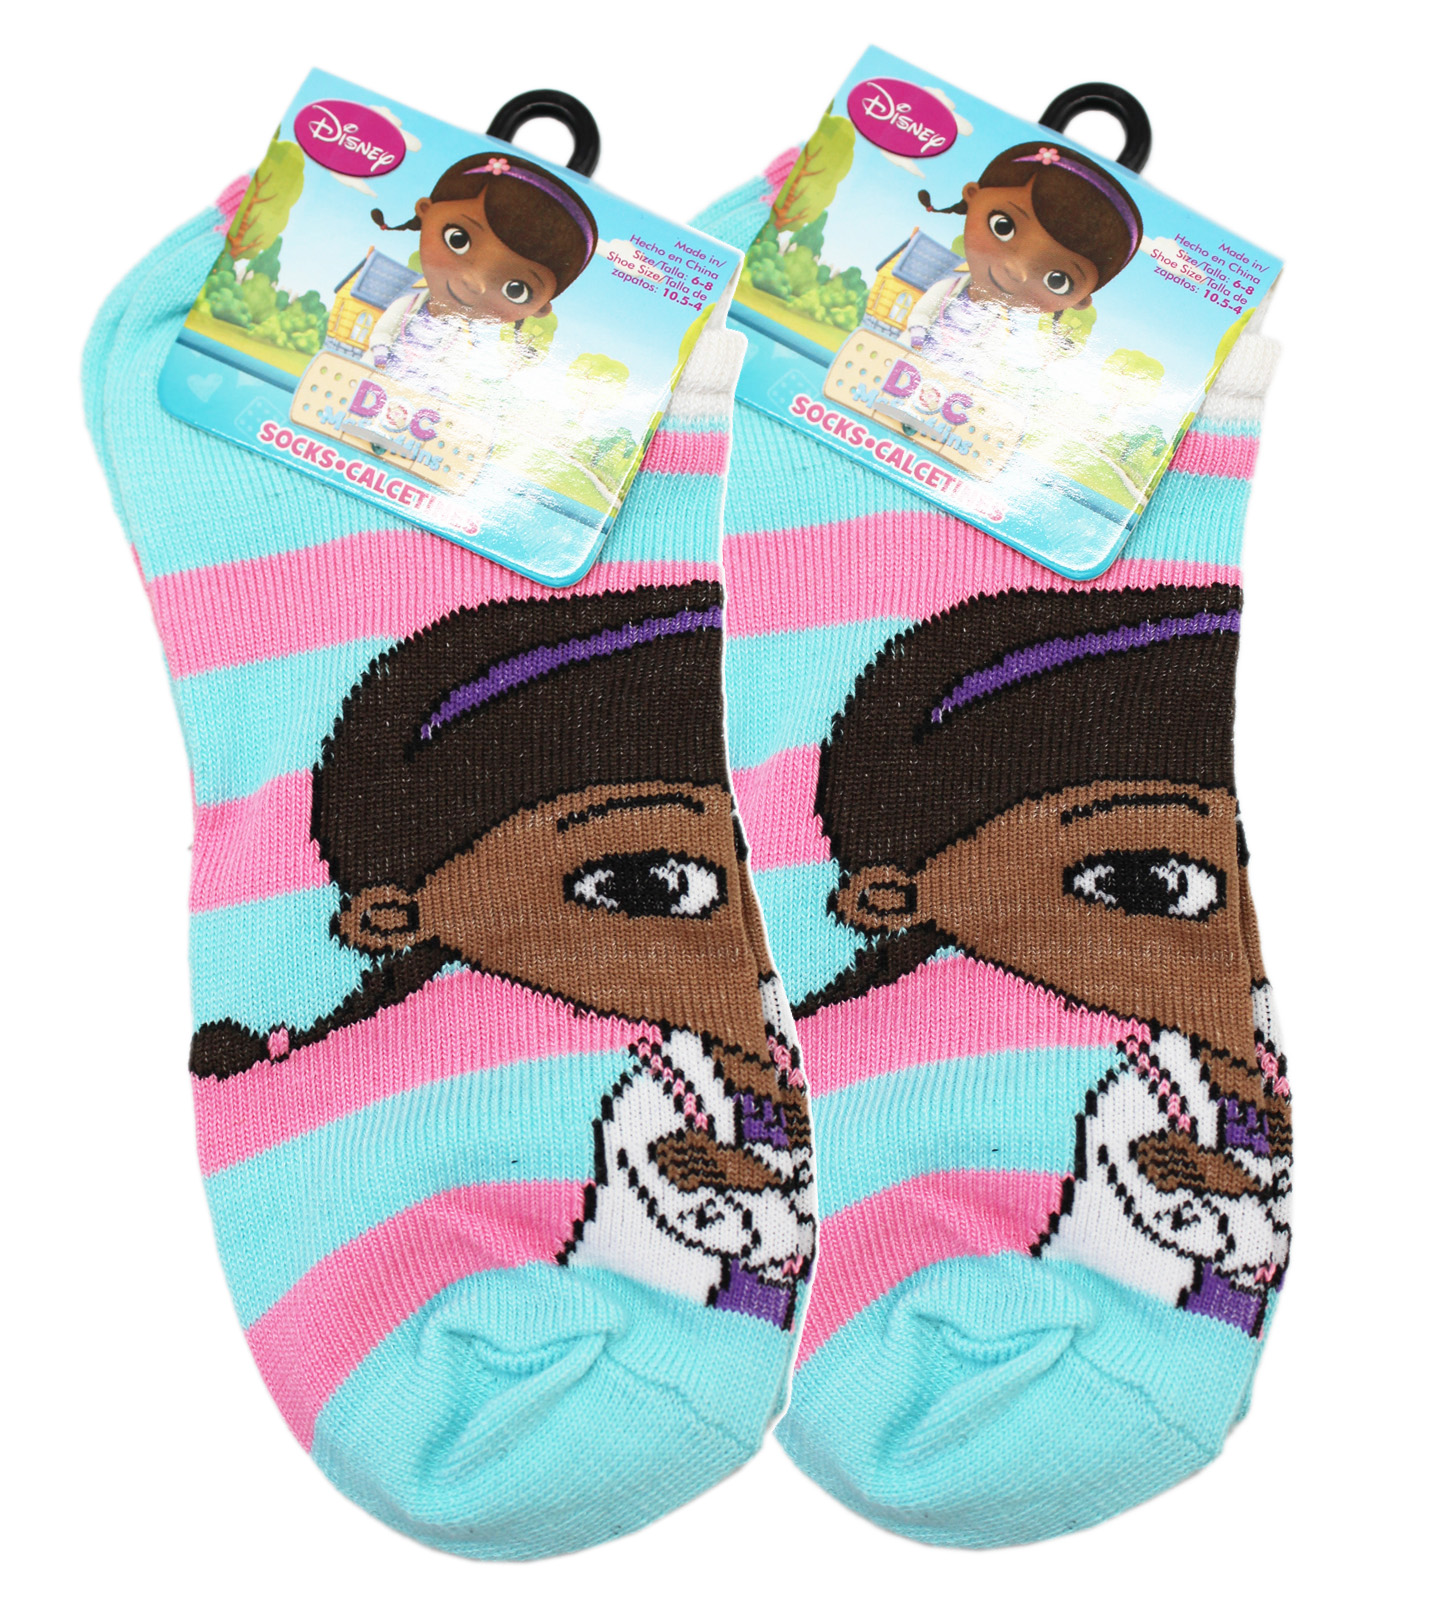 Disney's Doc McStuffins Pink and Light Blue Striped Socks (2 Pairs, Size 6-8)